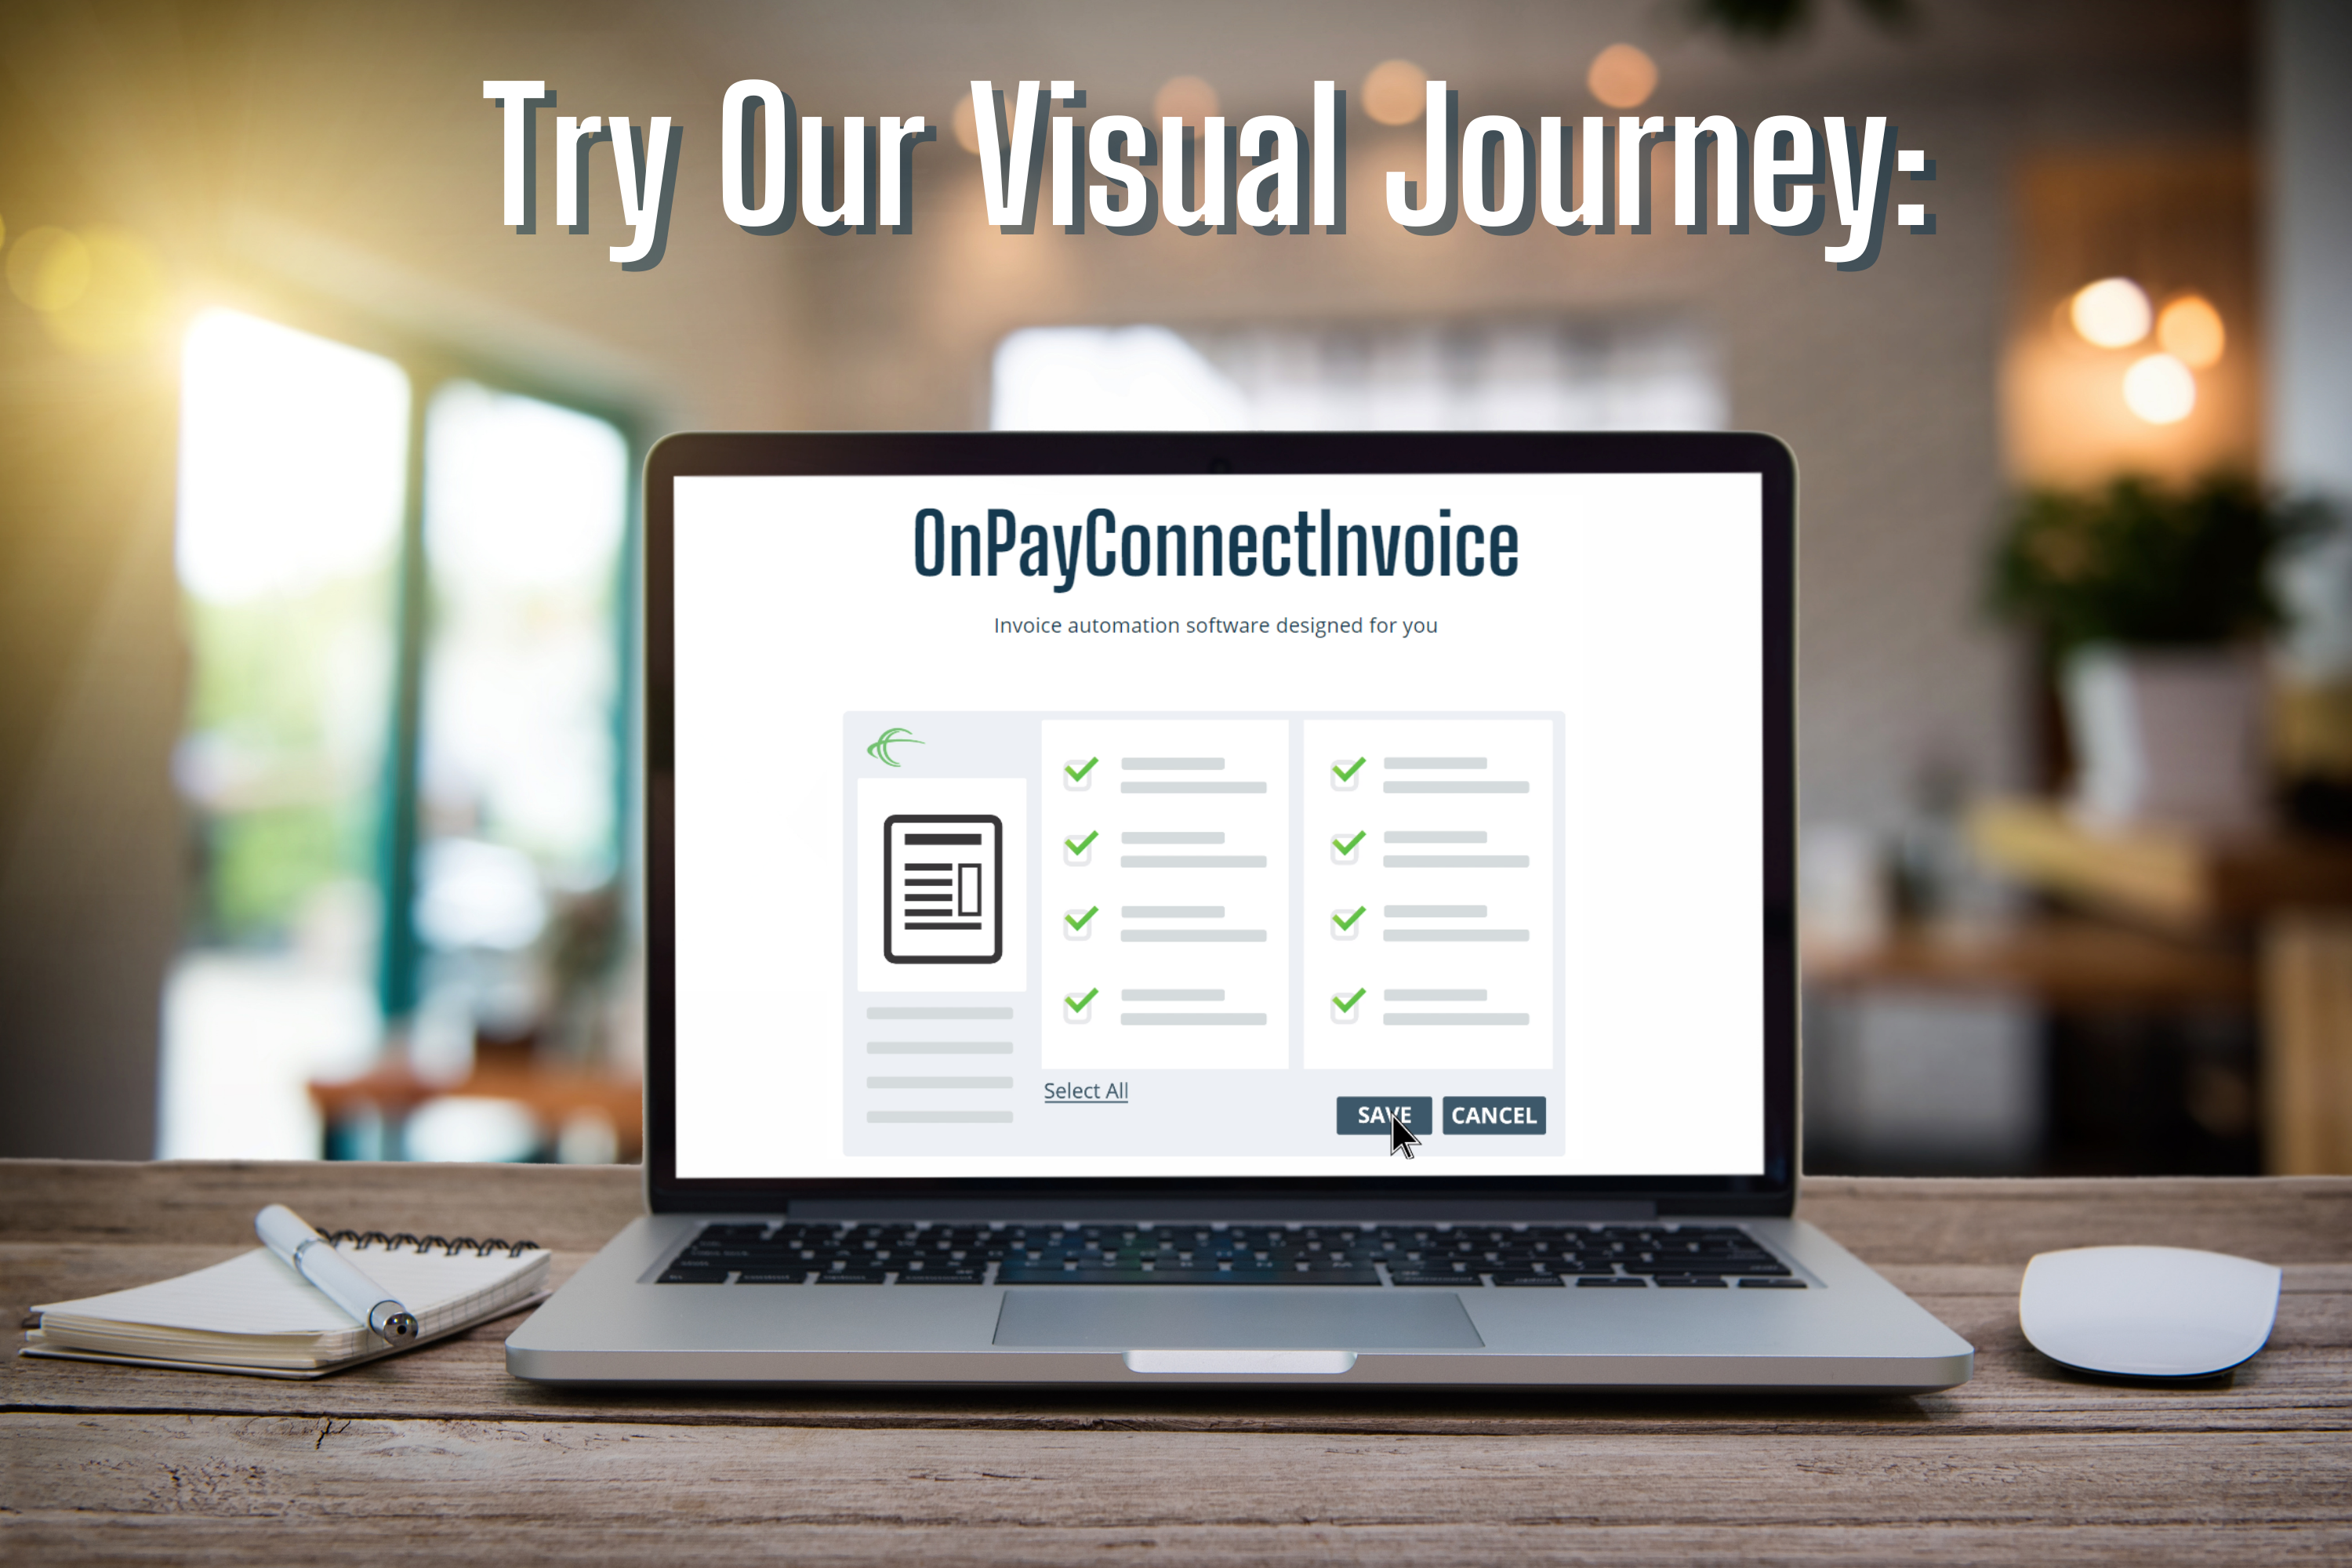 desk laptop with screen showing onpayconnectinvoice automation software visual journey